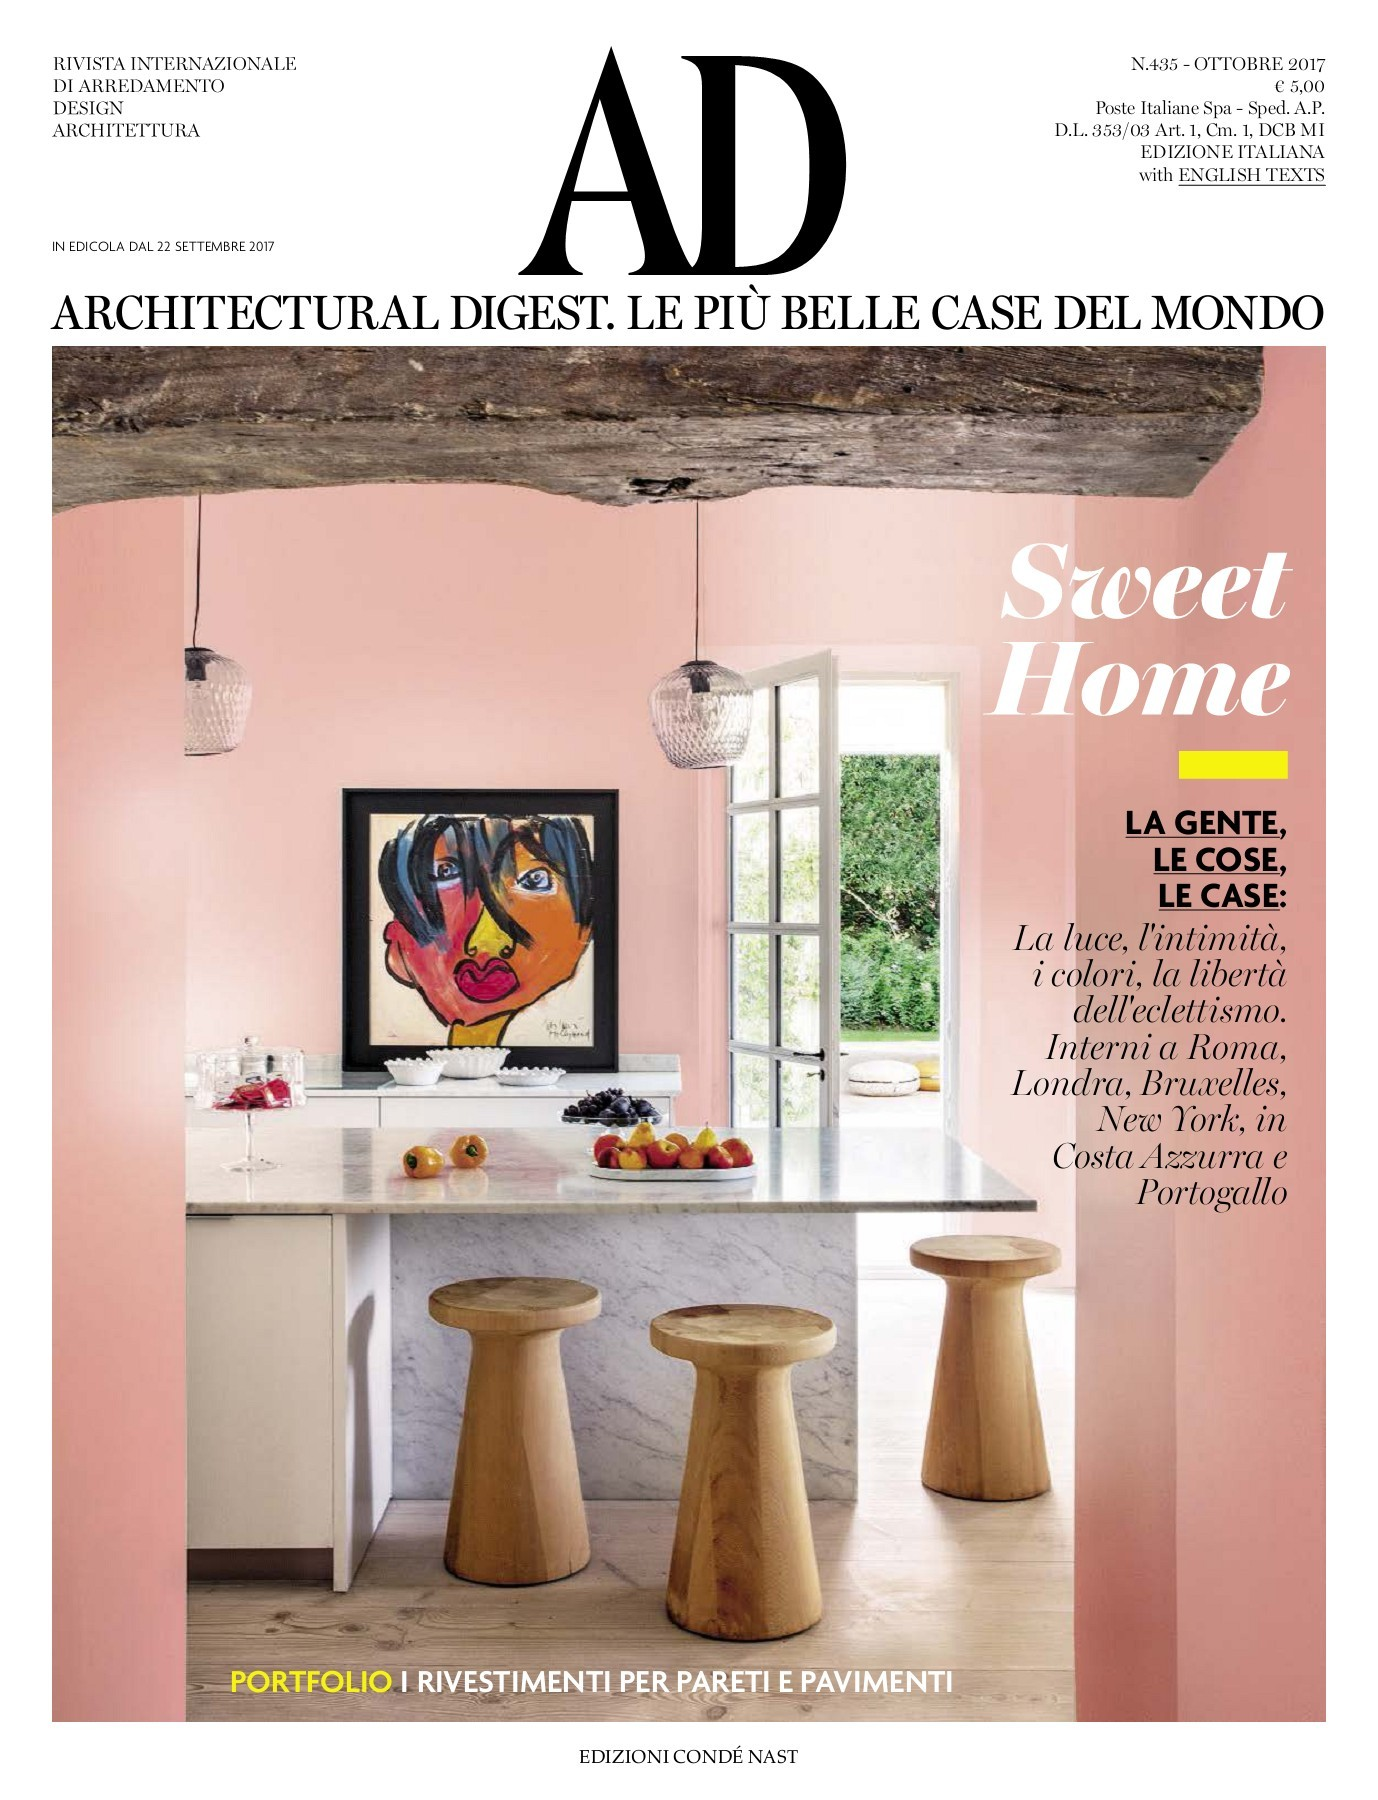 A Casa Di Babette architectural digest italia_oct 2017-flip book pages 1-50